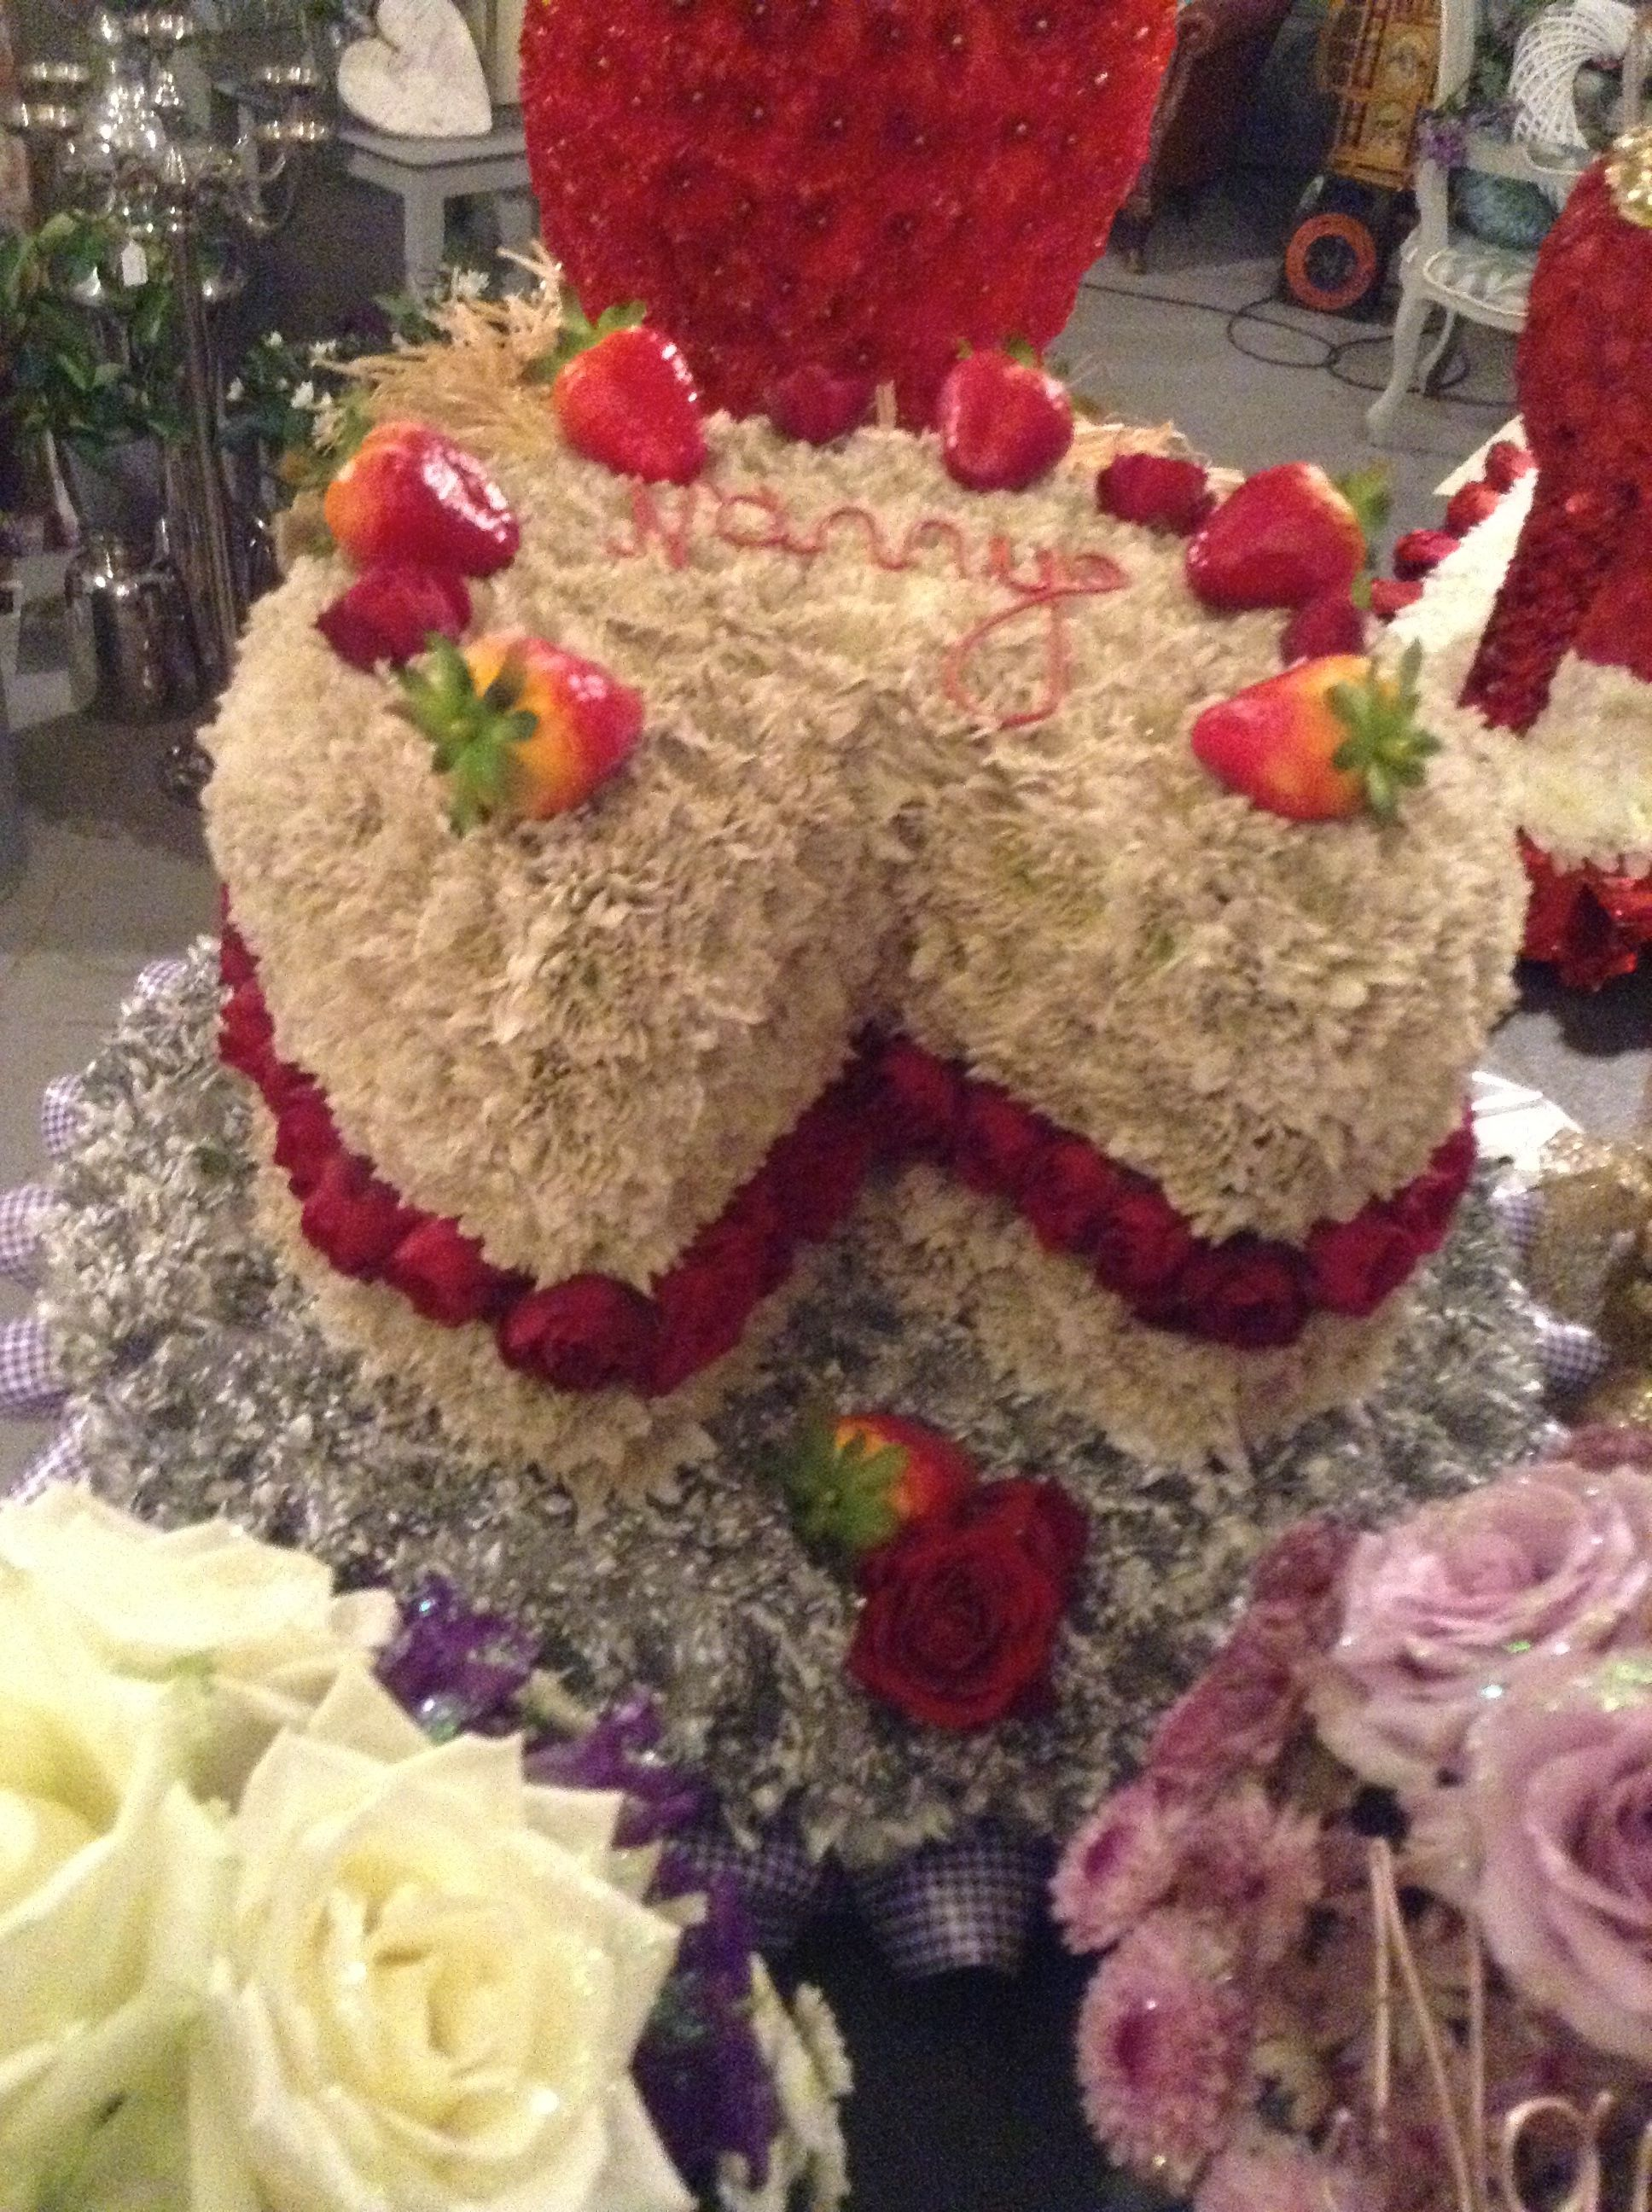 Funeral flowers cake funeral flower tribute victoria sponge funeral flowers cake funeral flower tribute victoria sponge funeral flower tribute bespoke funeral izmirmasajfo Image collections